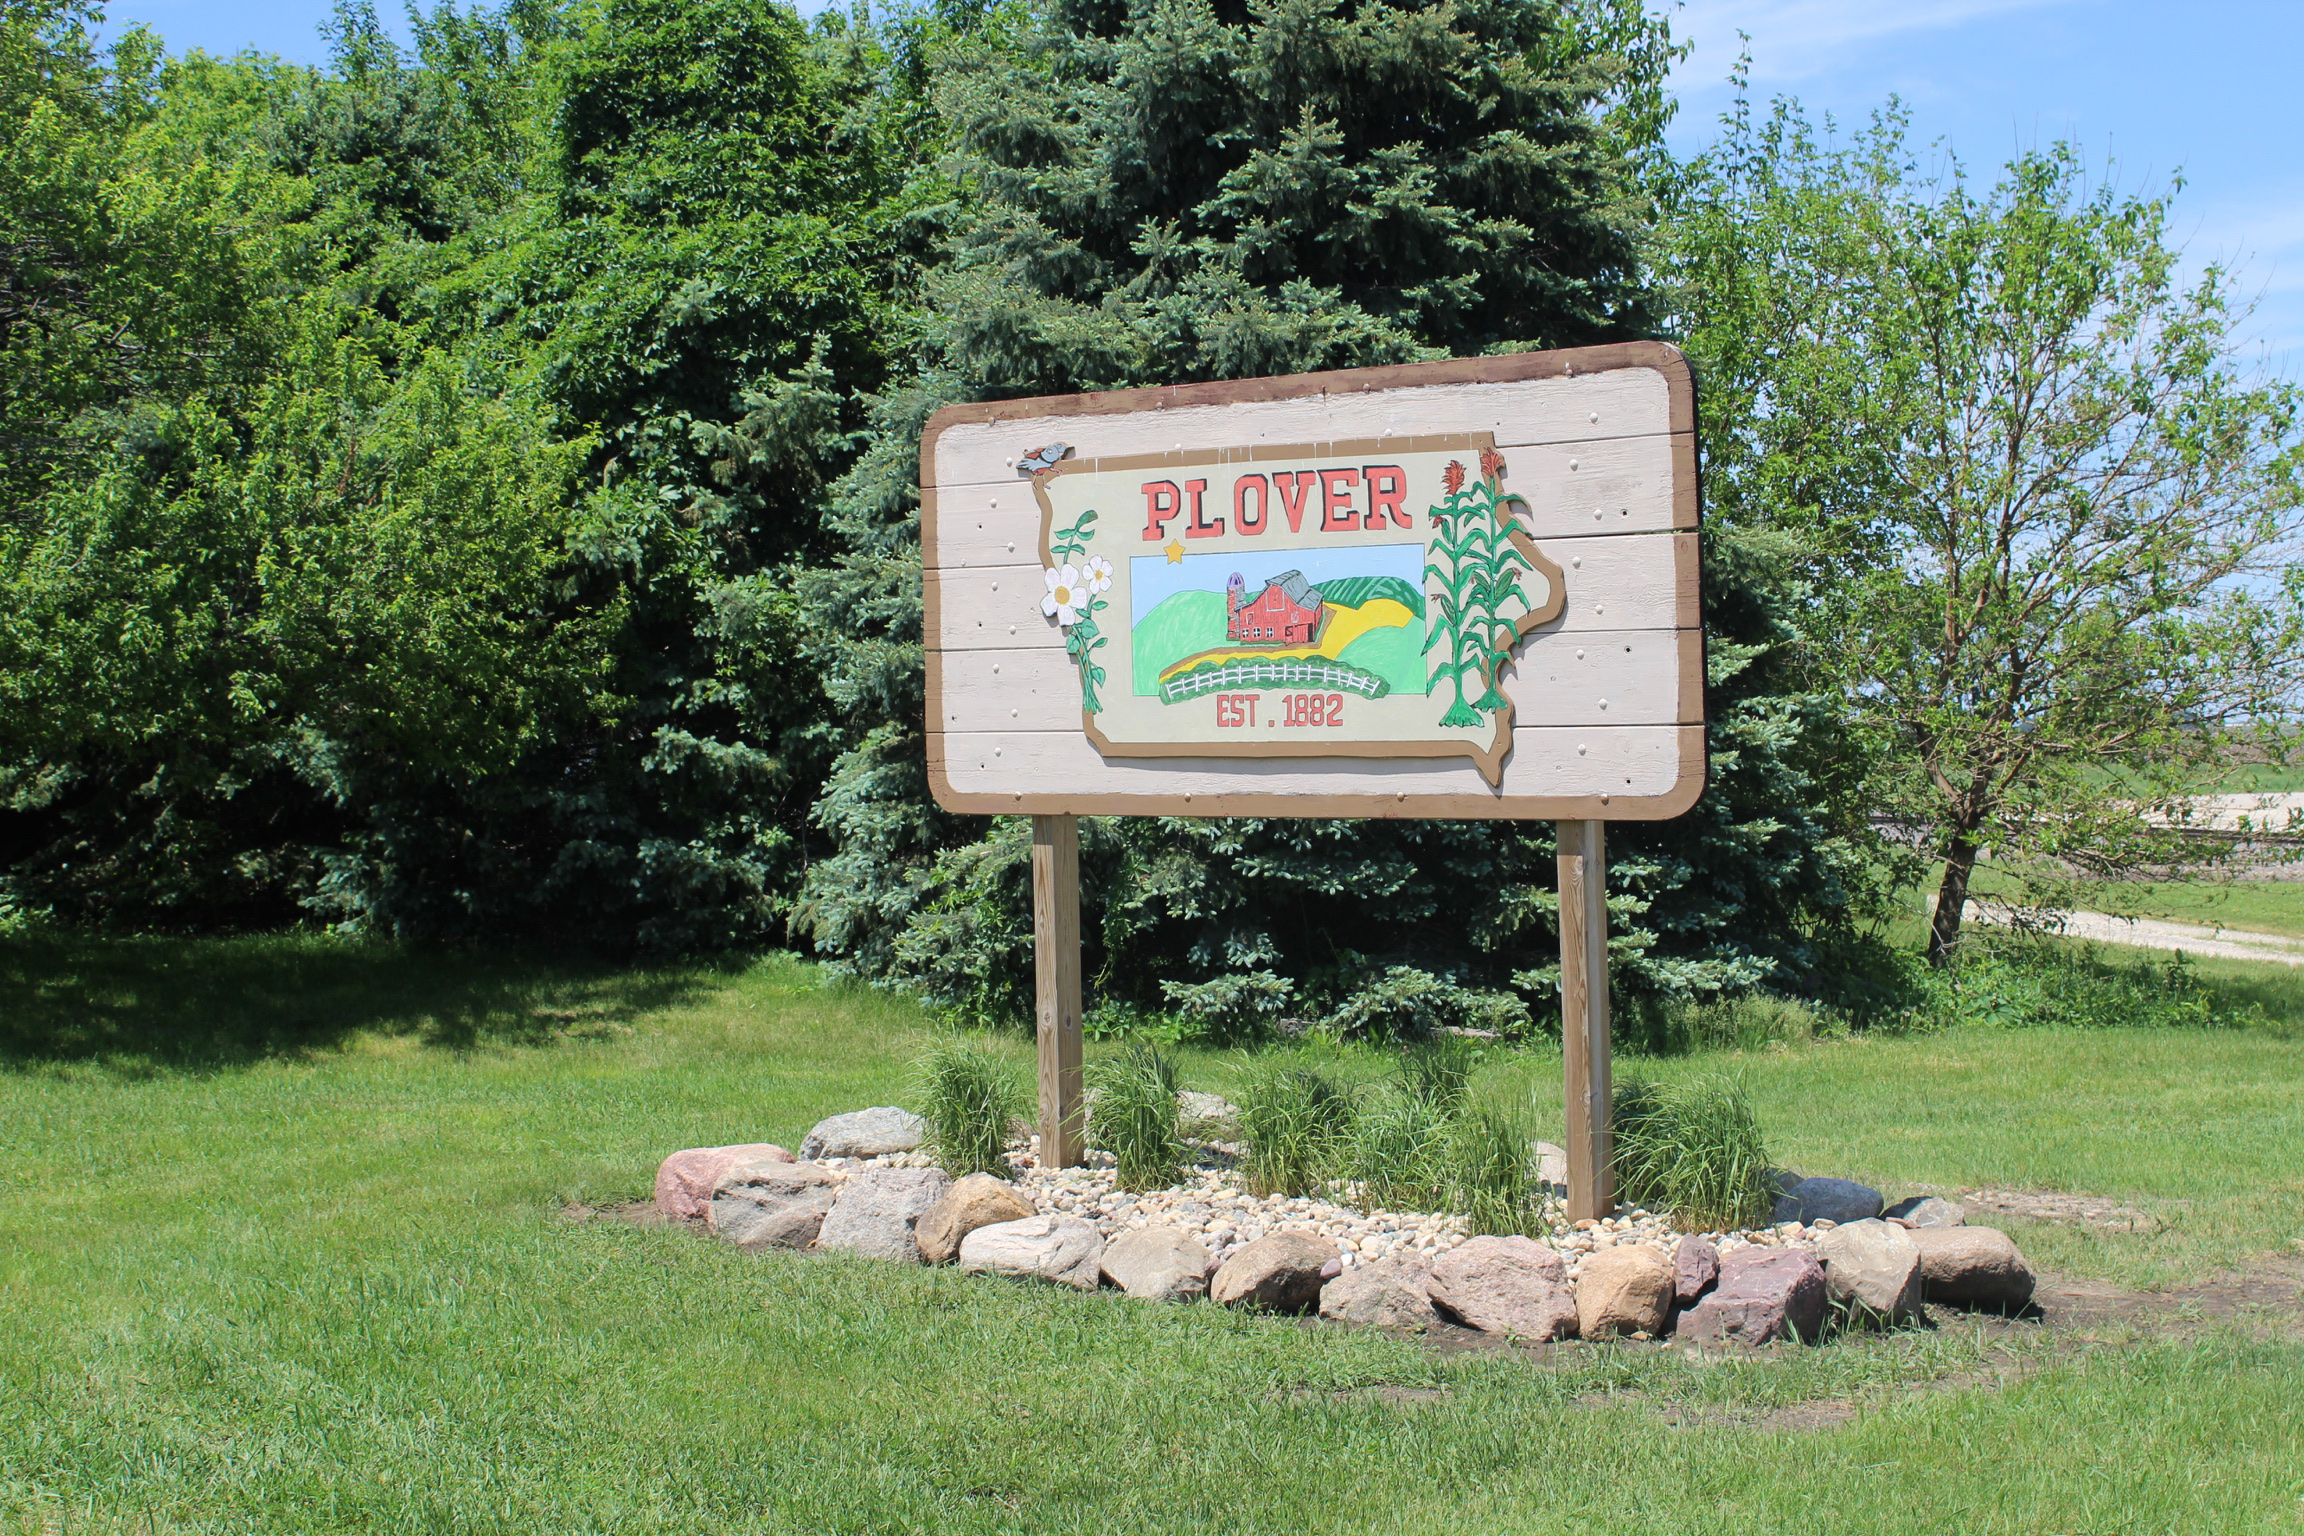 Image of City entryway sign